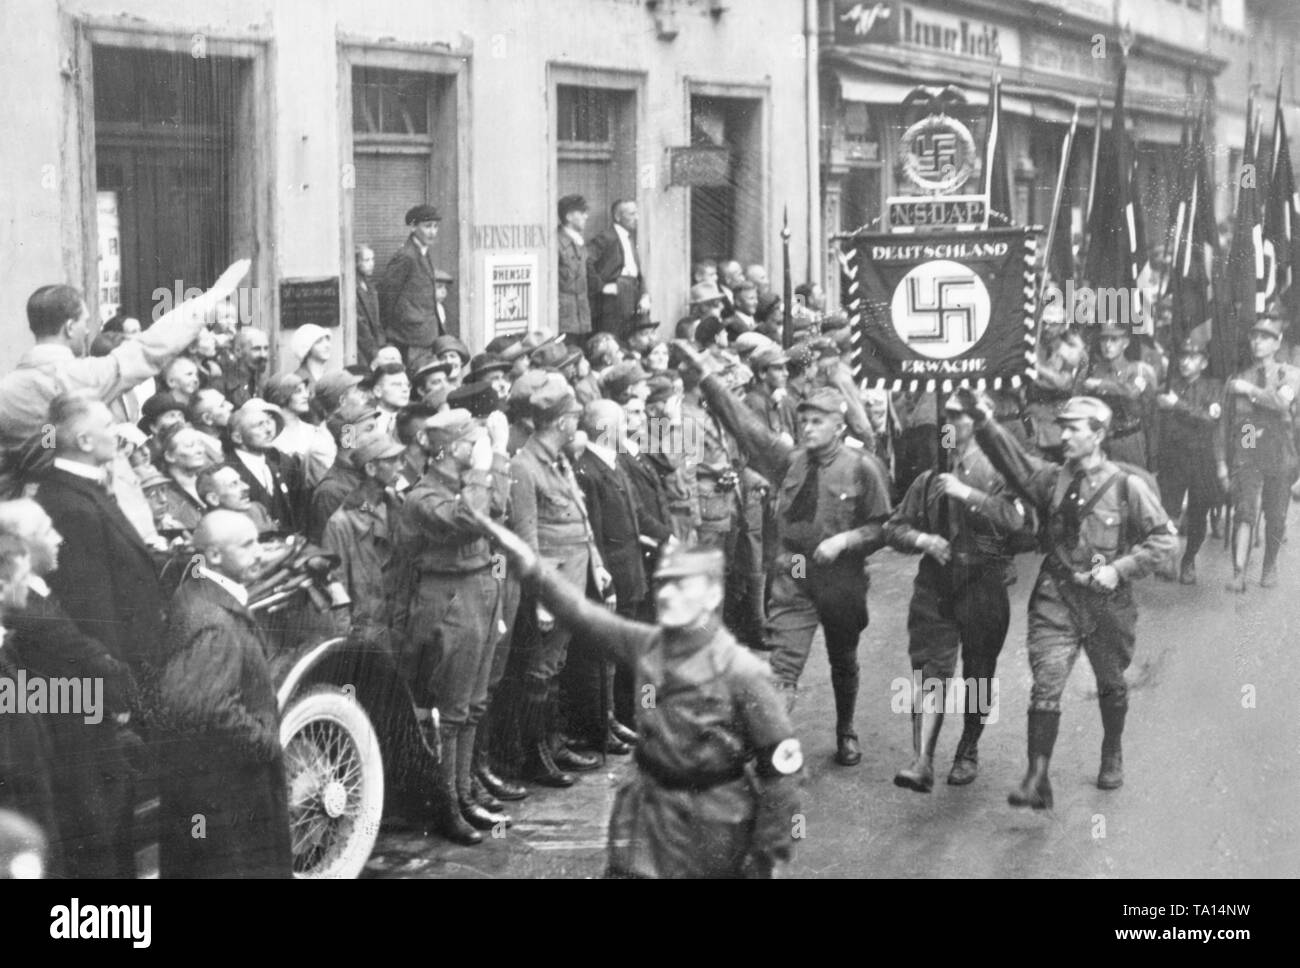 On the first party conference of the NSDAP in Weimar, the call of Dietrich Eckarts, 'Deutschland erwache' (Germany awake), becomes the slogan of the still young party. Adolf Hitler greets the standard bearers on his car, ahead stand the Franconian leader Julius Streicher, Gottfried Feder and Alfred Rosenberg. - Stock Image